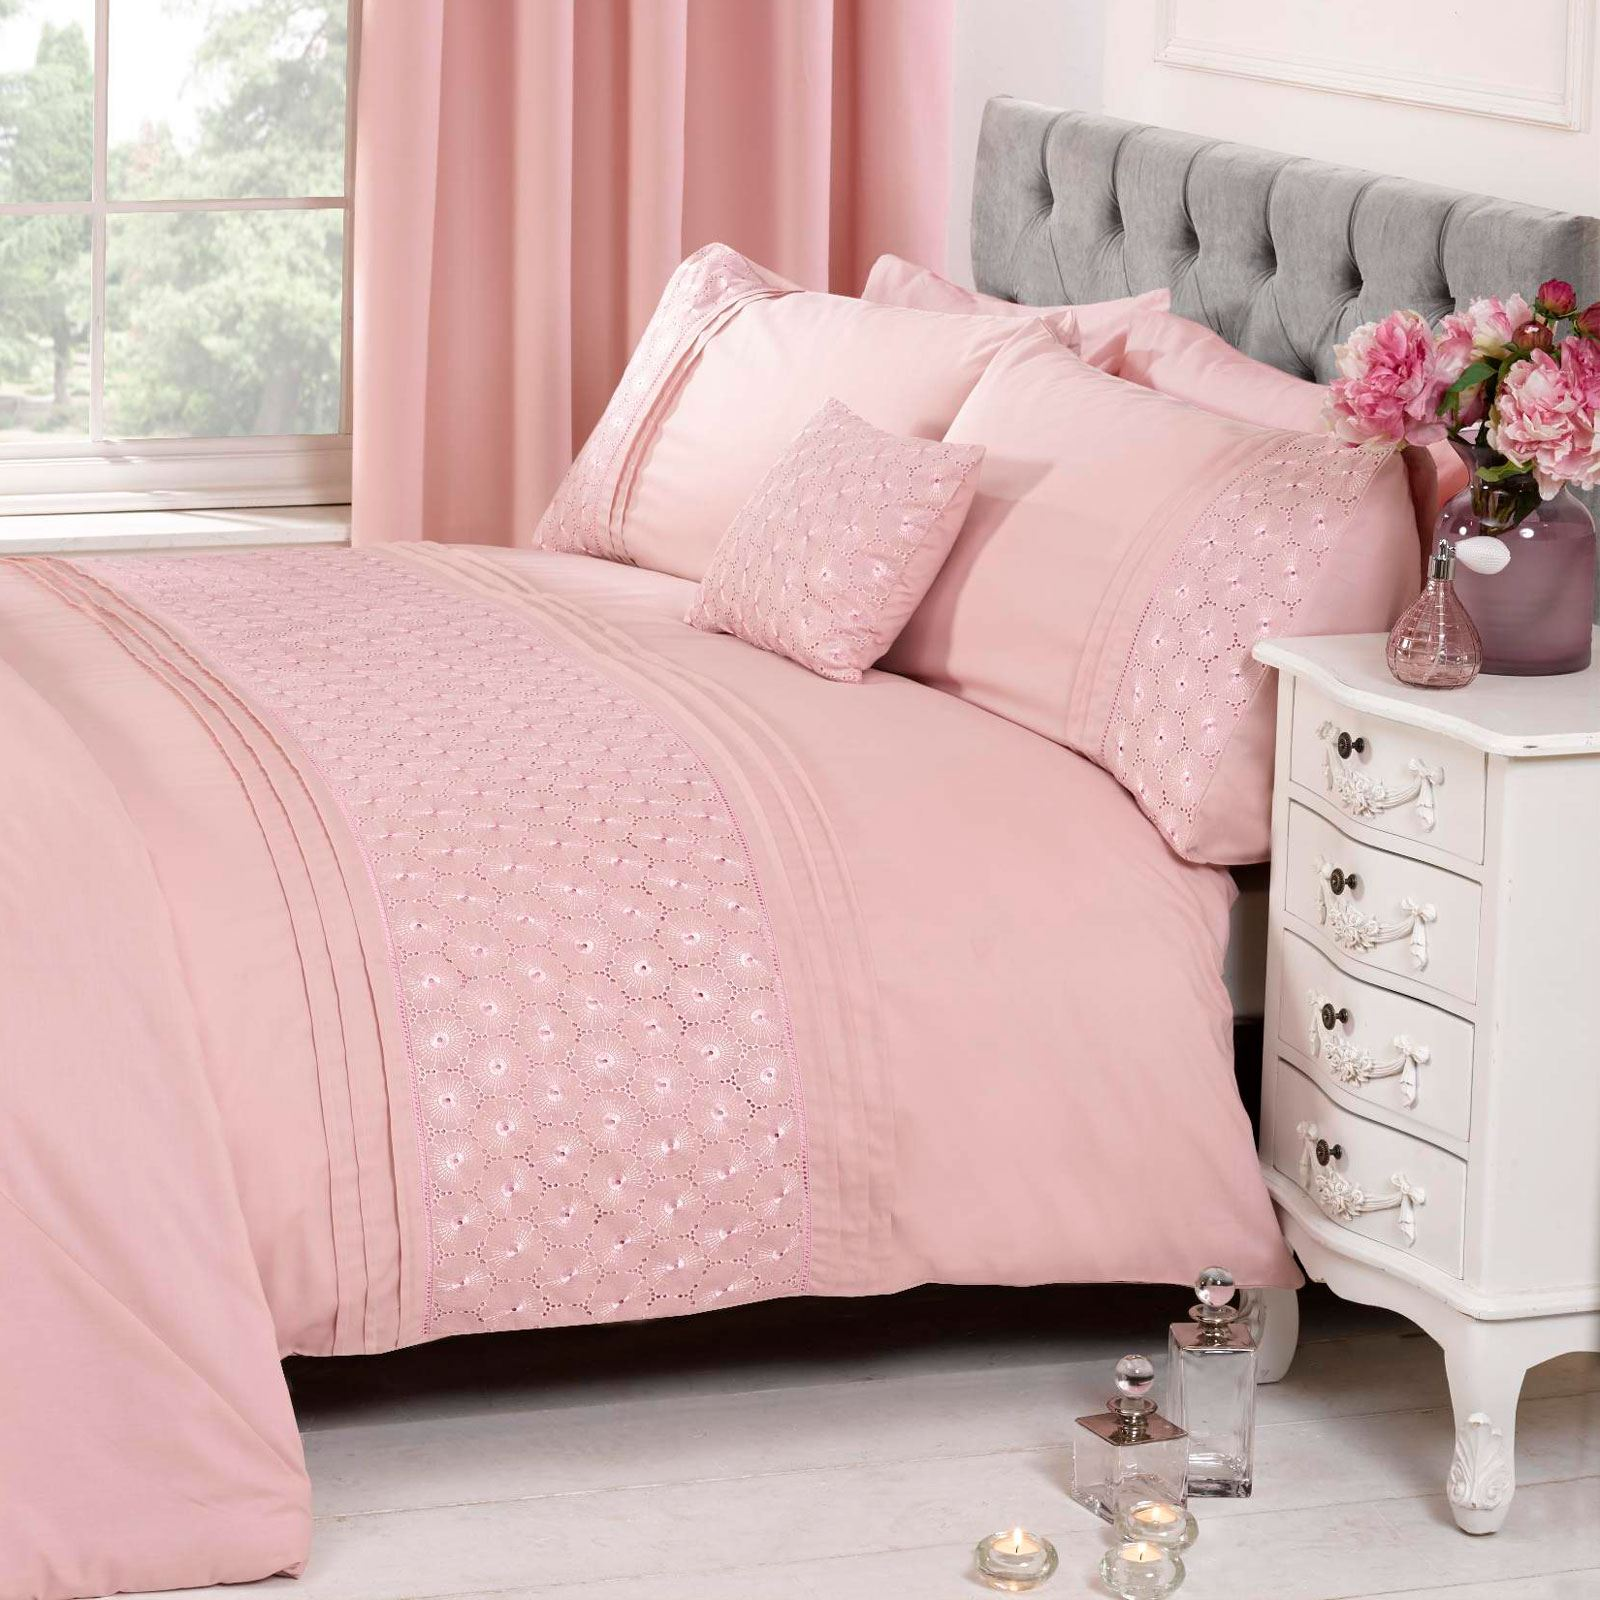 Blush Pink Quilt Cover Details About Everdean Floral Blush Pink Duvet Cover Pillowcase Set Elegant Double